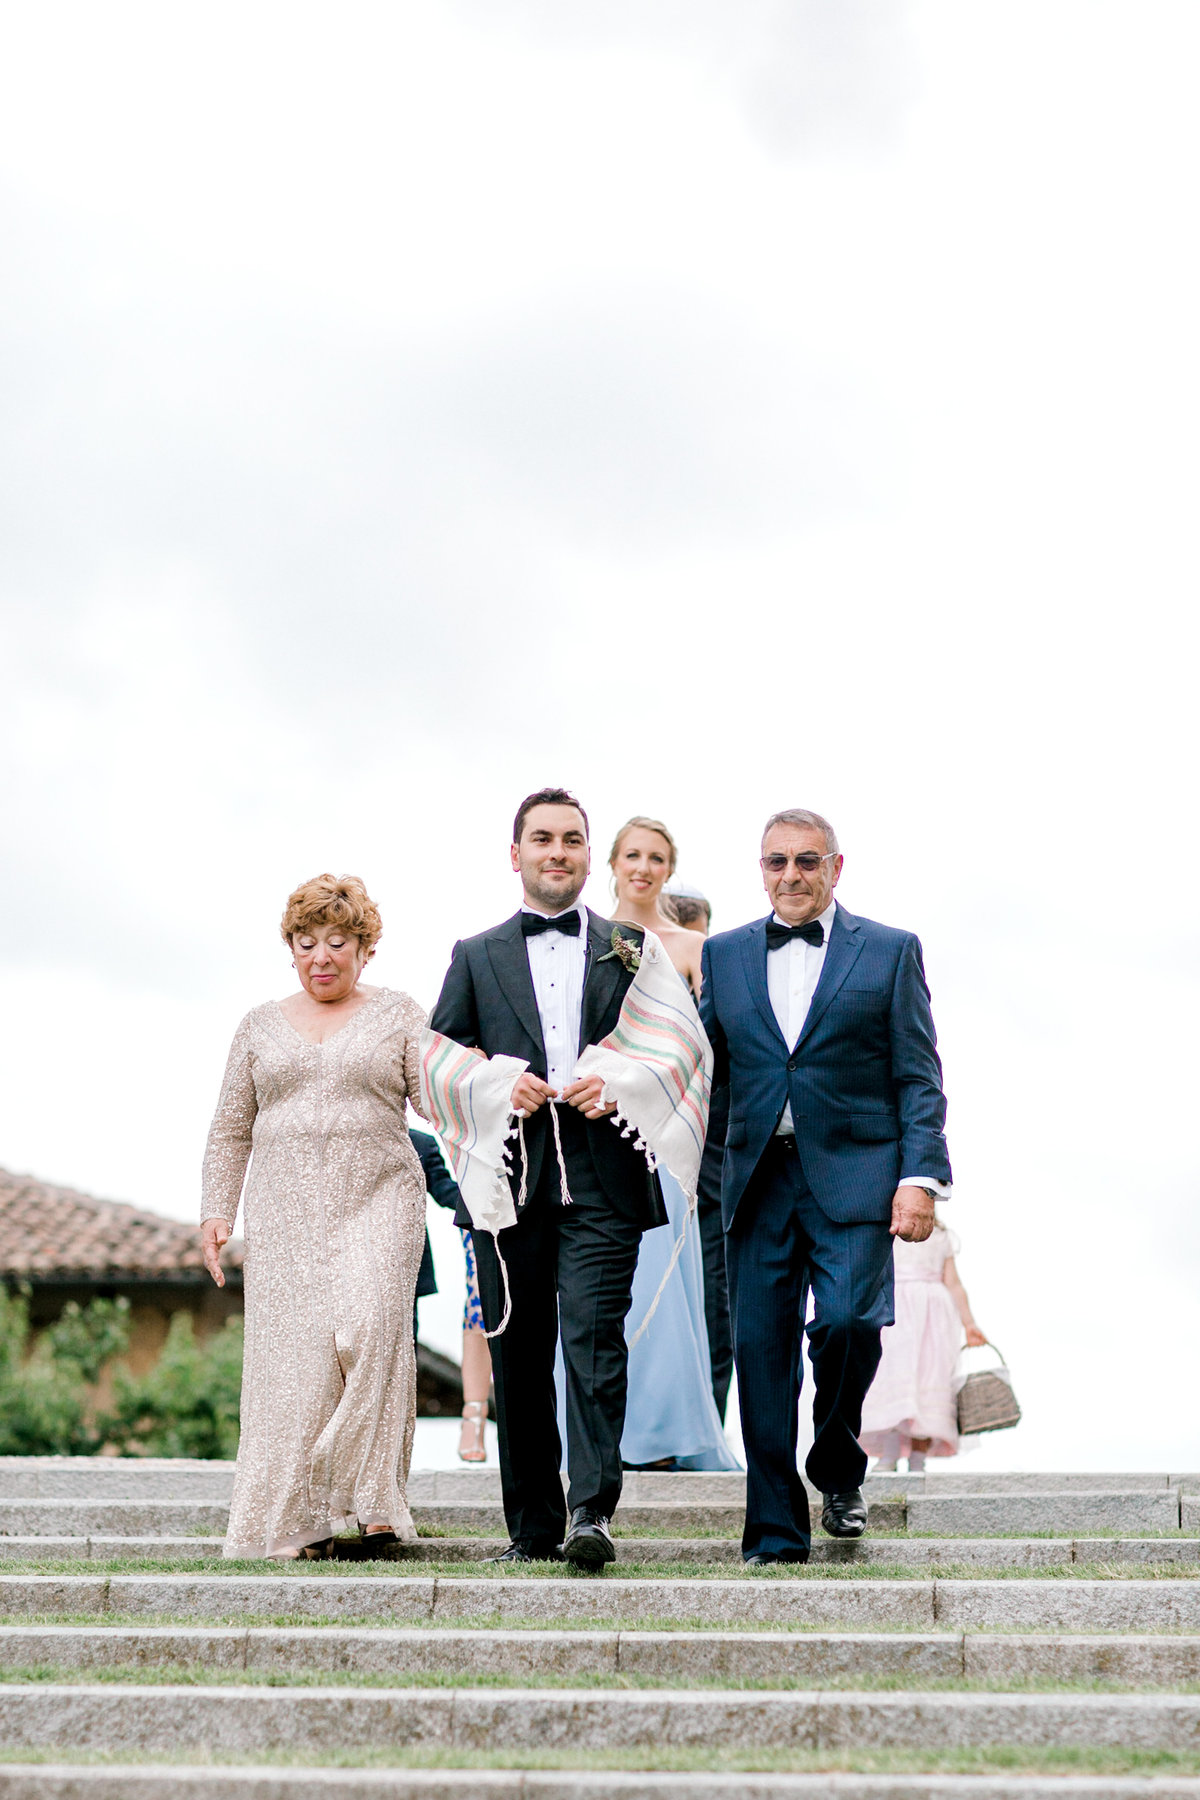 Destination-Vineyard-Italian-Wedding-New-York-Photographer-Jessica-Haley-Photo-34